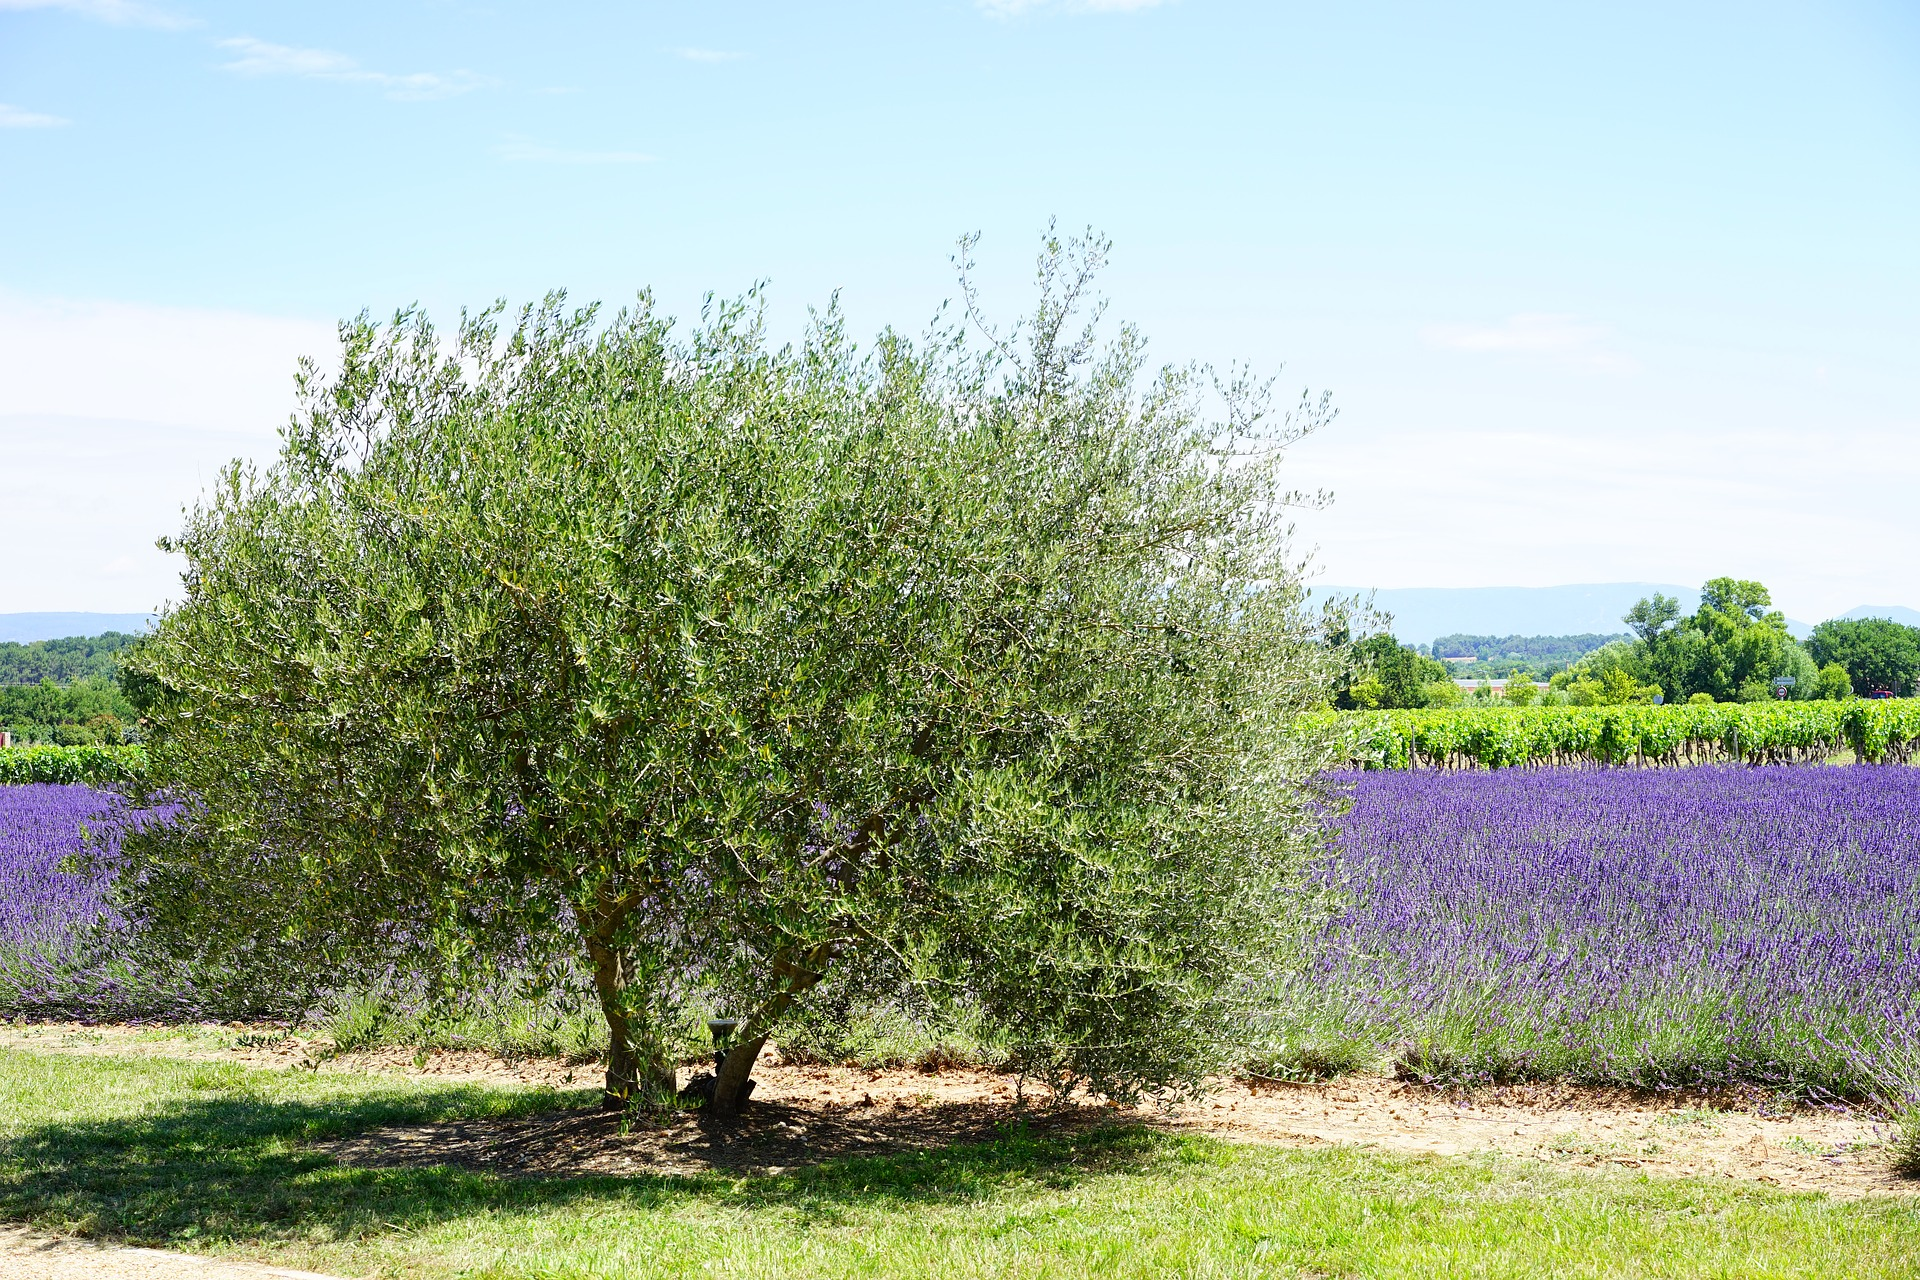 Olive Tree In Your Own Backyard